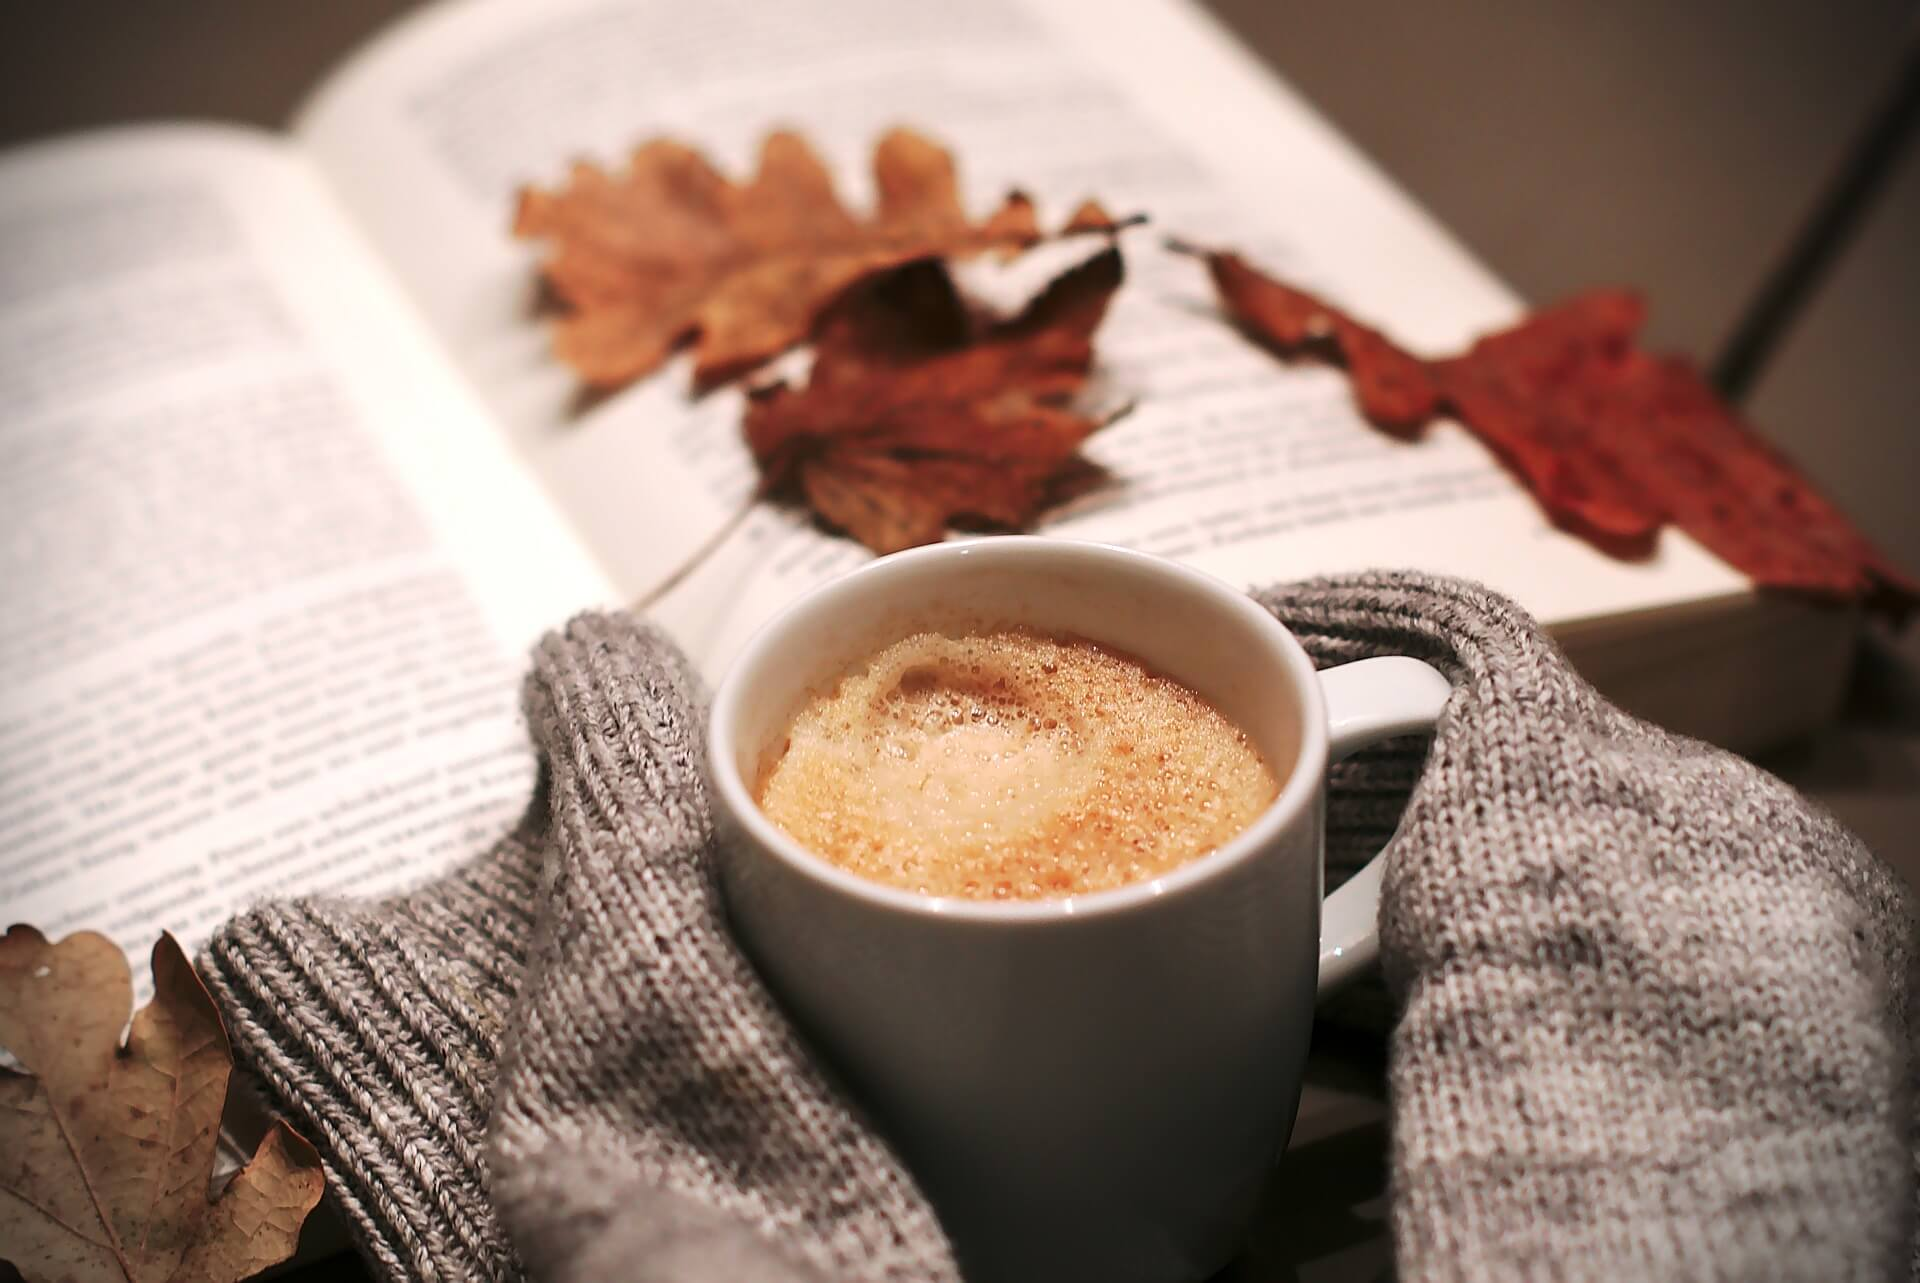 Hands covered by long sleeves and holding a mug of coffee. A book in the background with Autumn leaves on it